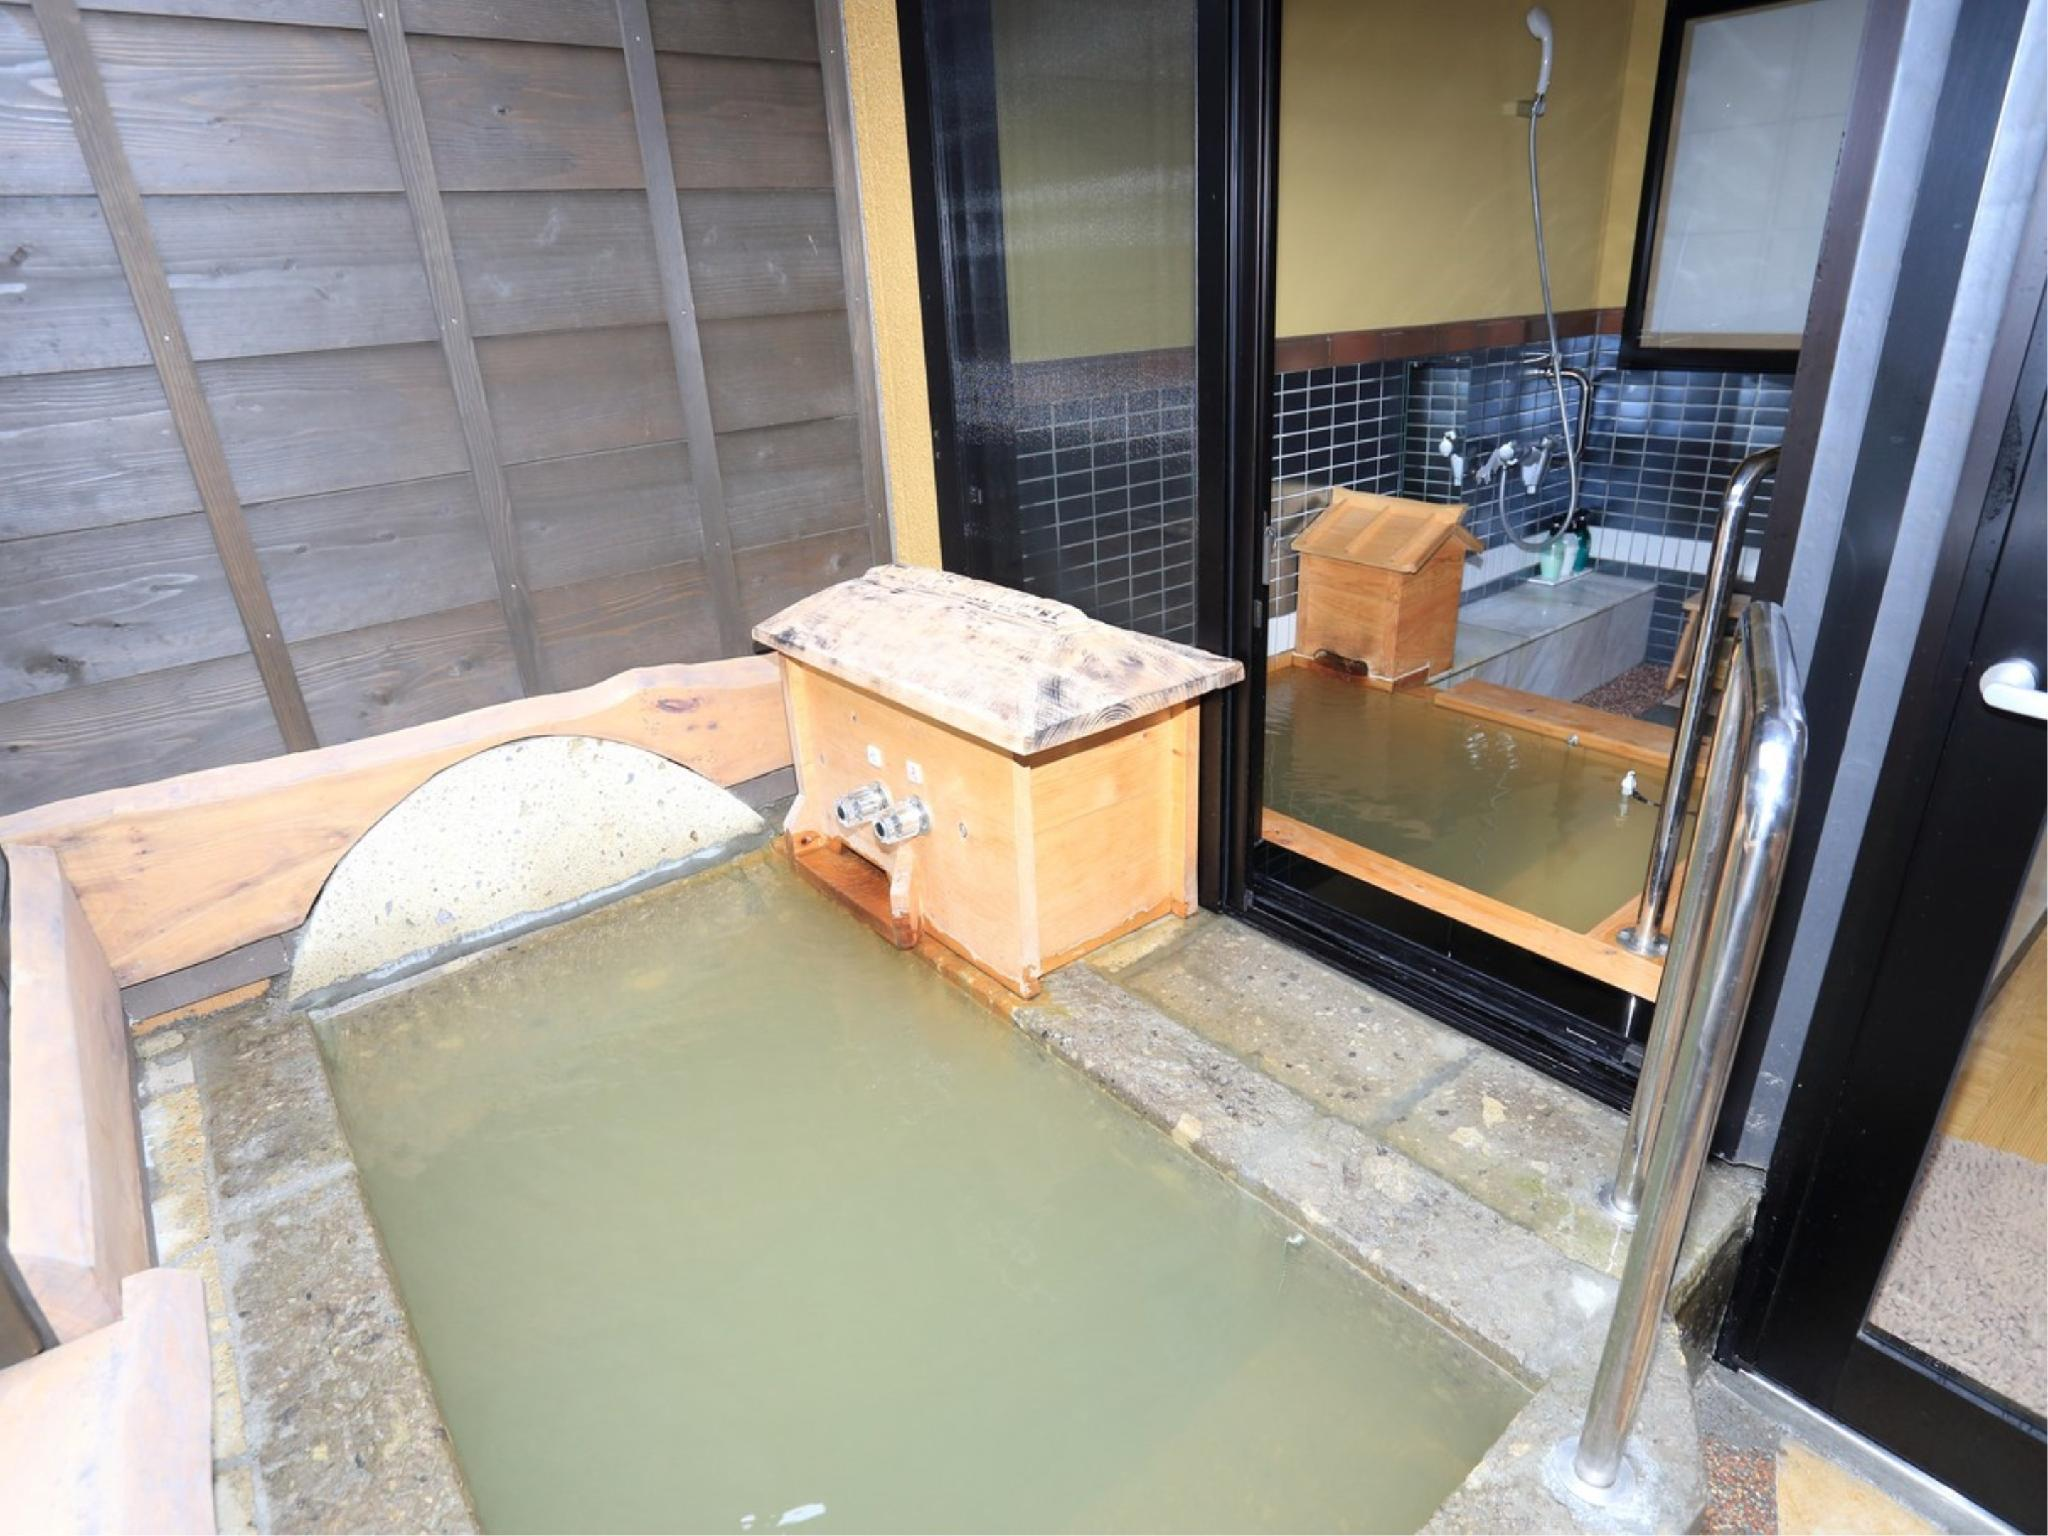 111-113号房 双人双床房+源泉放流式温泉室内浴室+露天风吕 (Twin Room with Indoor Hot Spring Bath + Open-air Bath (No. 111-113))